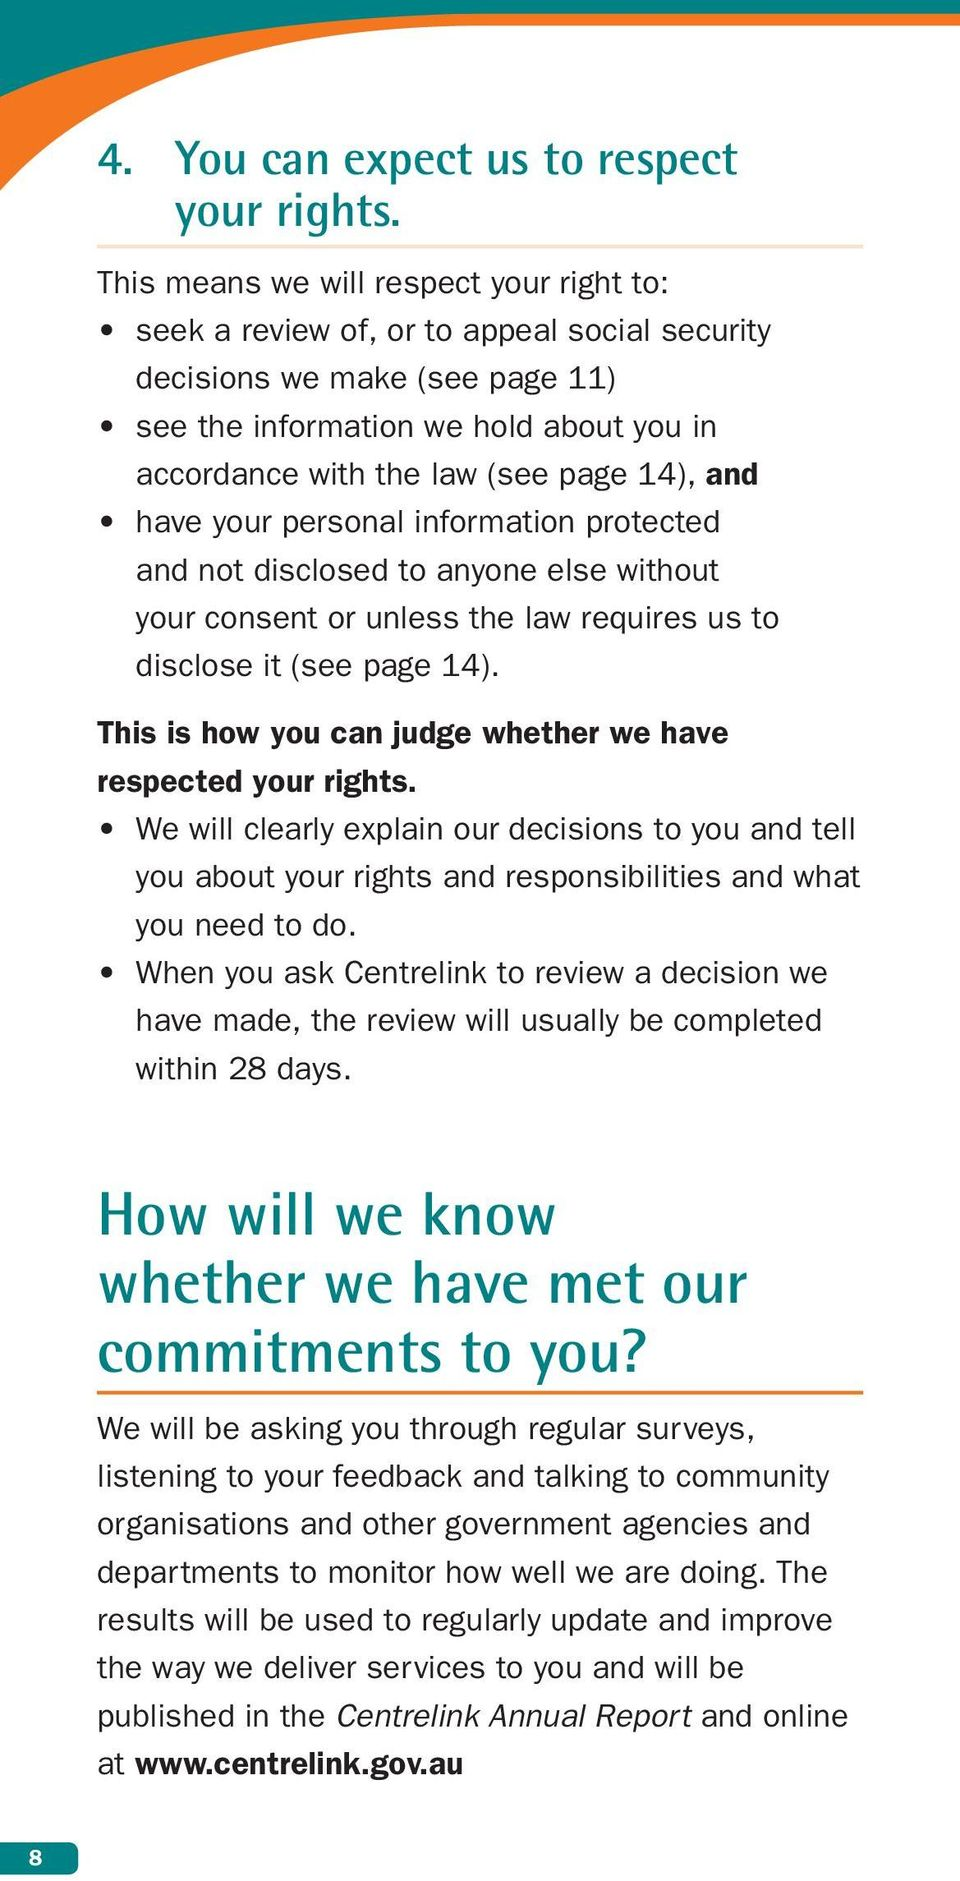 14), and have your personal information protected and not disclosed to anyone else without your consent or unless the law requires us to disclose it (see page 14).